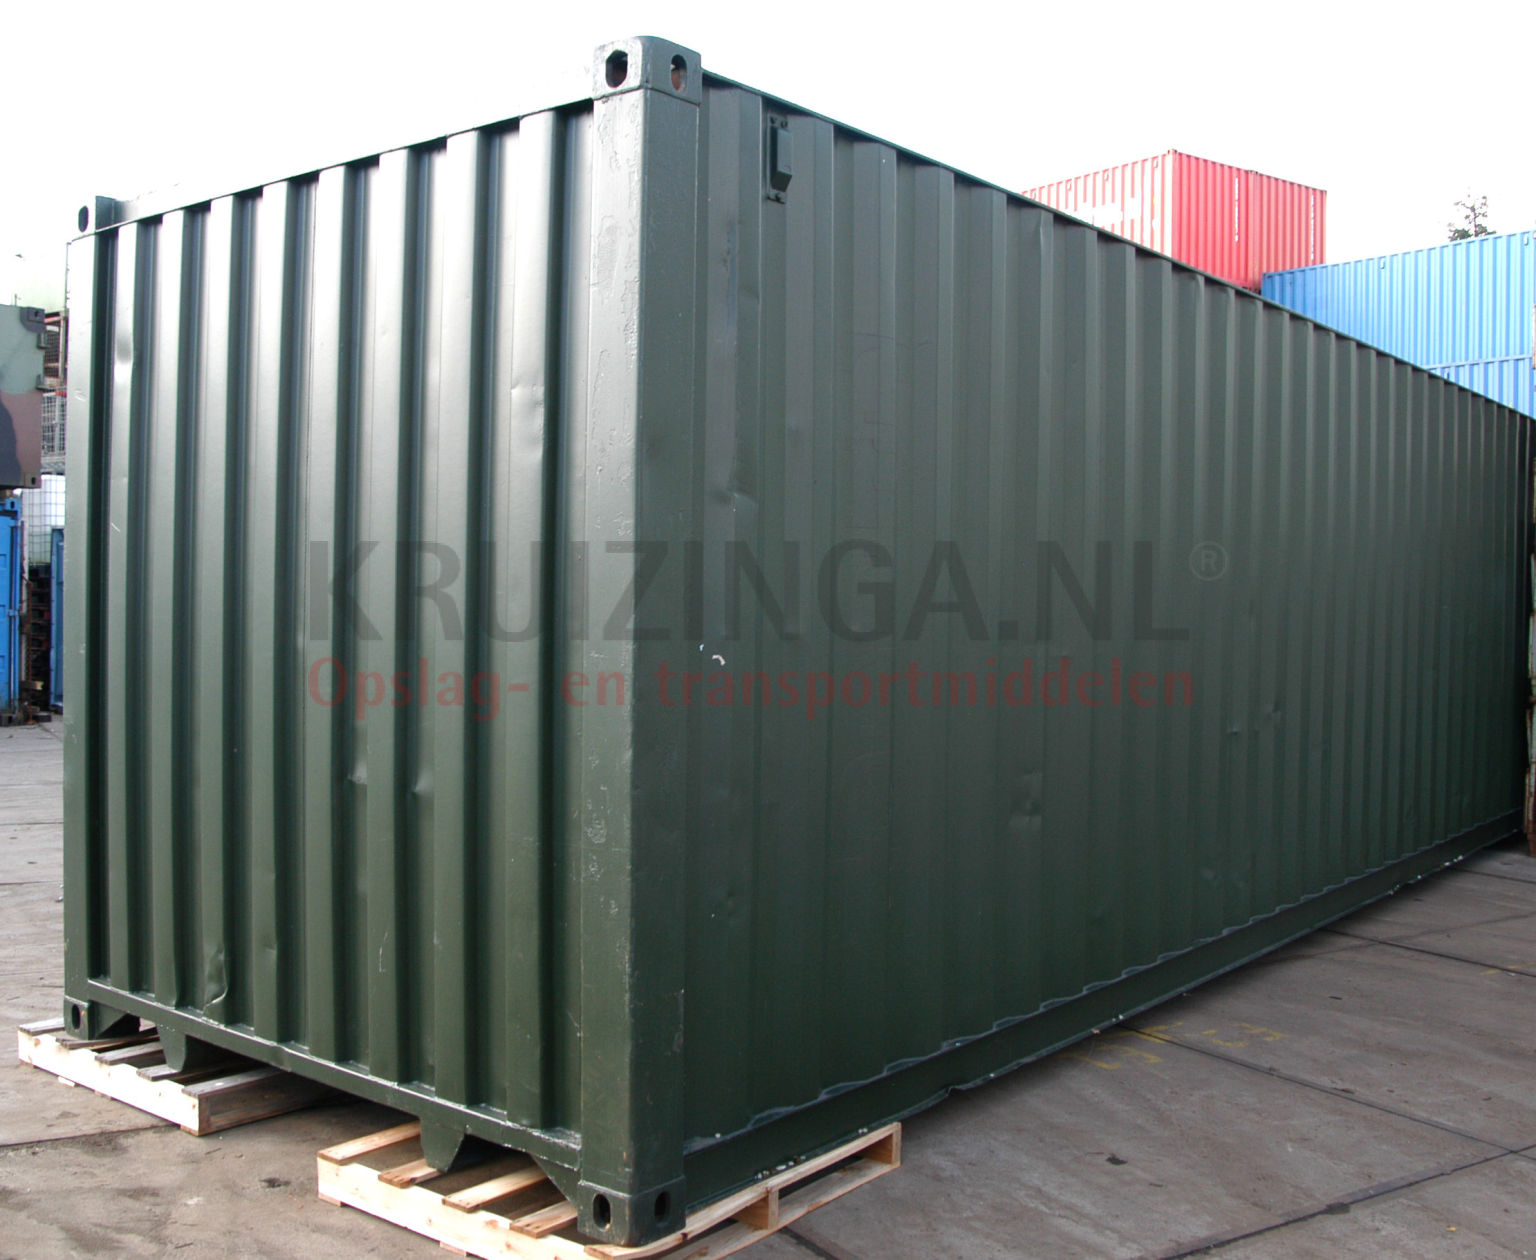 container materialcontainer 40 fu gebraucht 1250. Black Bedroom Furniture Sets. Home Design Ideas